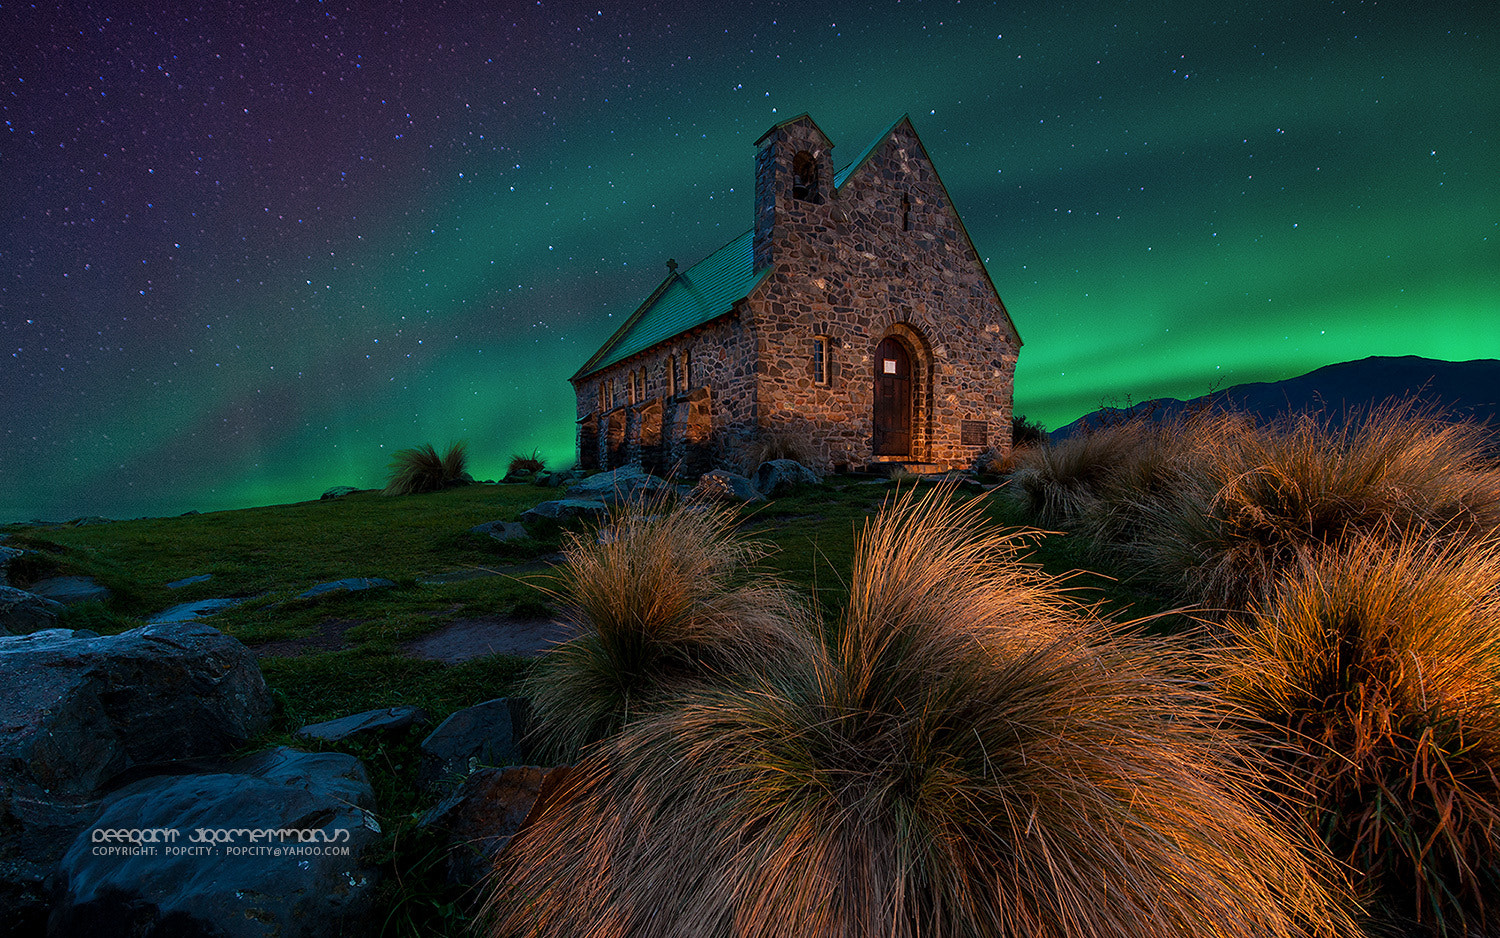 Photograph Aurora at Lake Tekapo by Peerakit Jirachetthakun 5392 on 500px